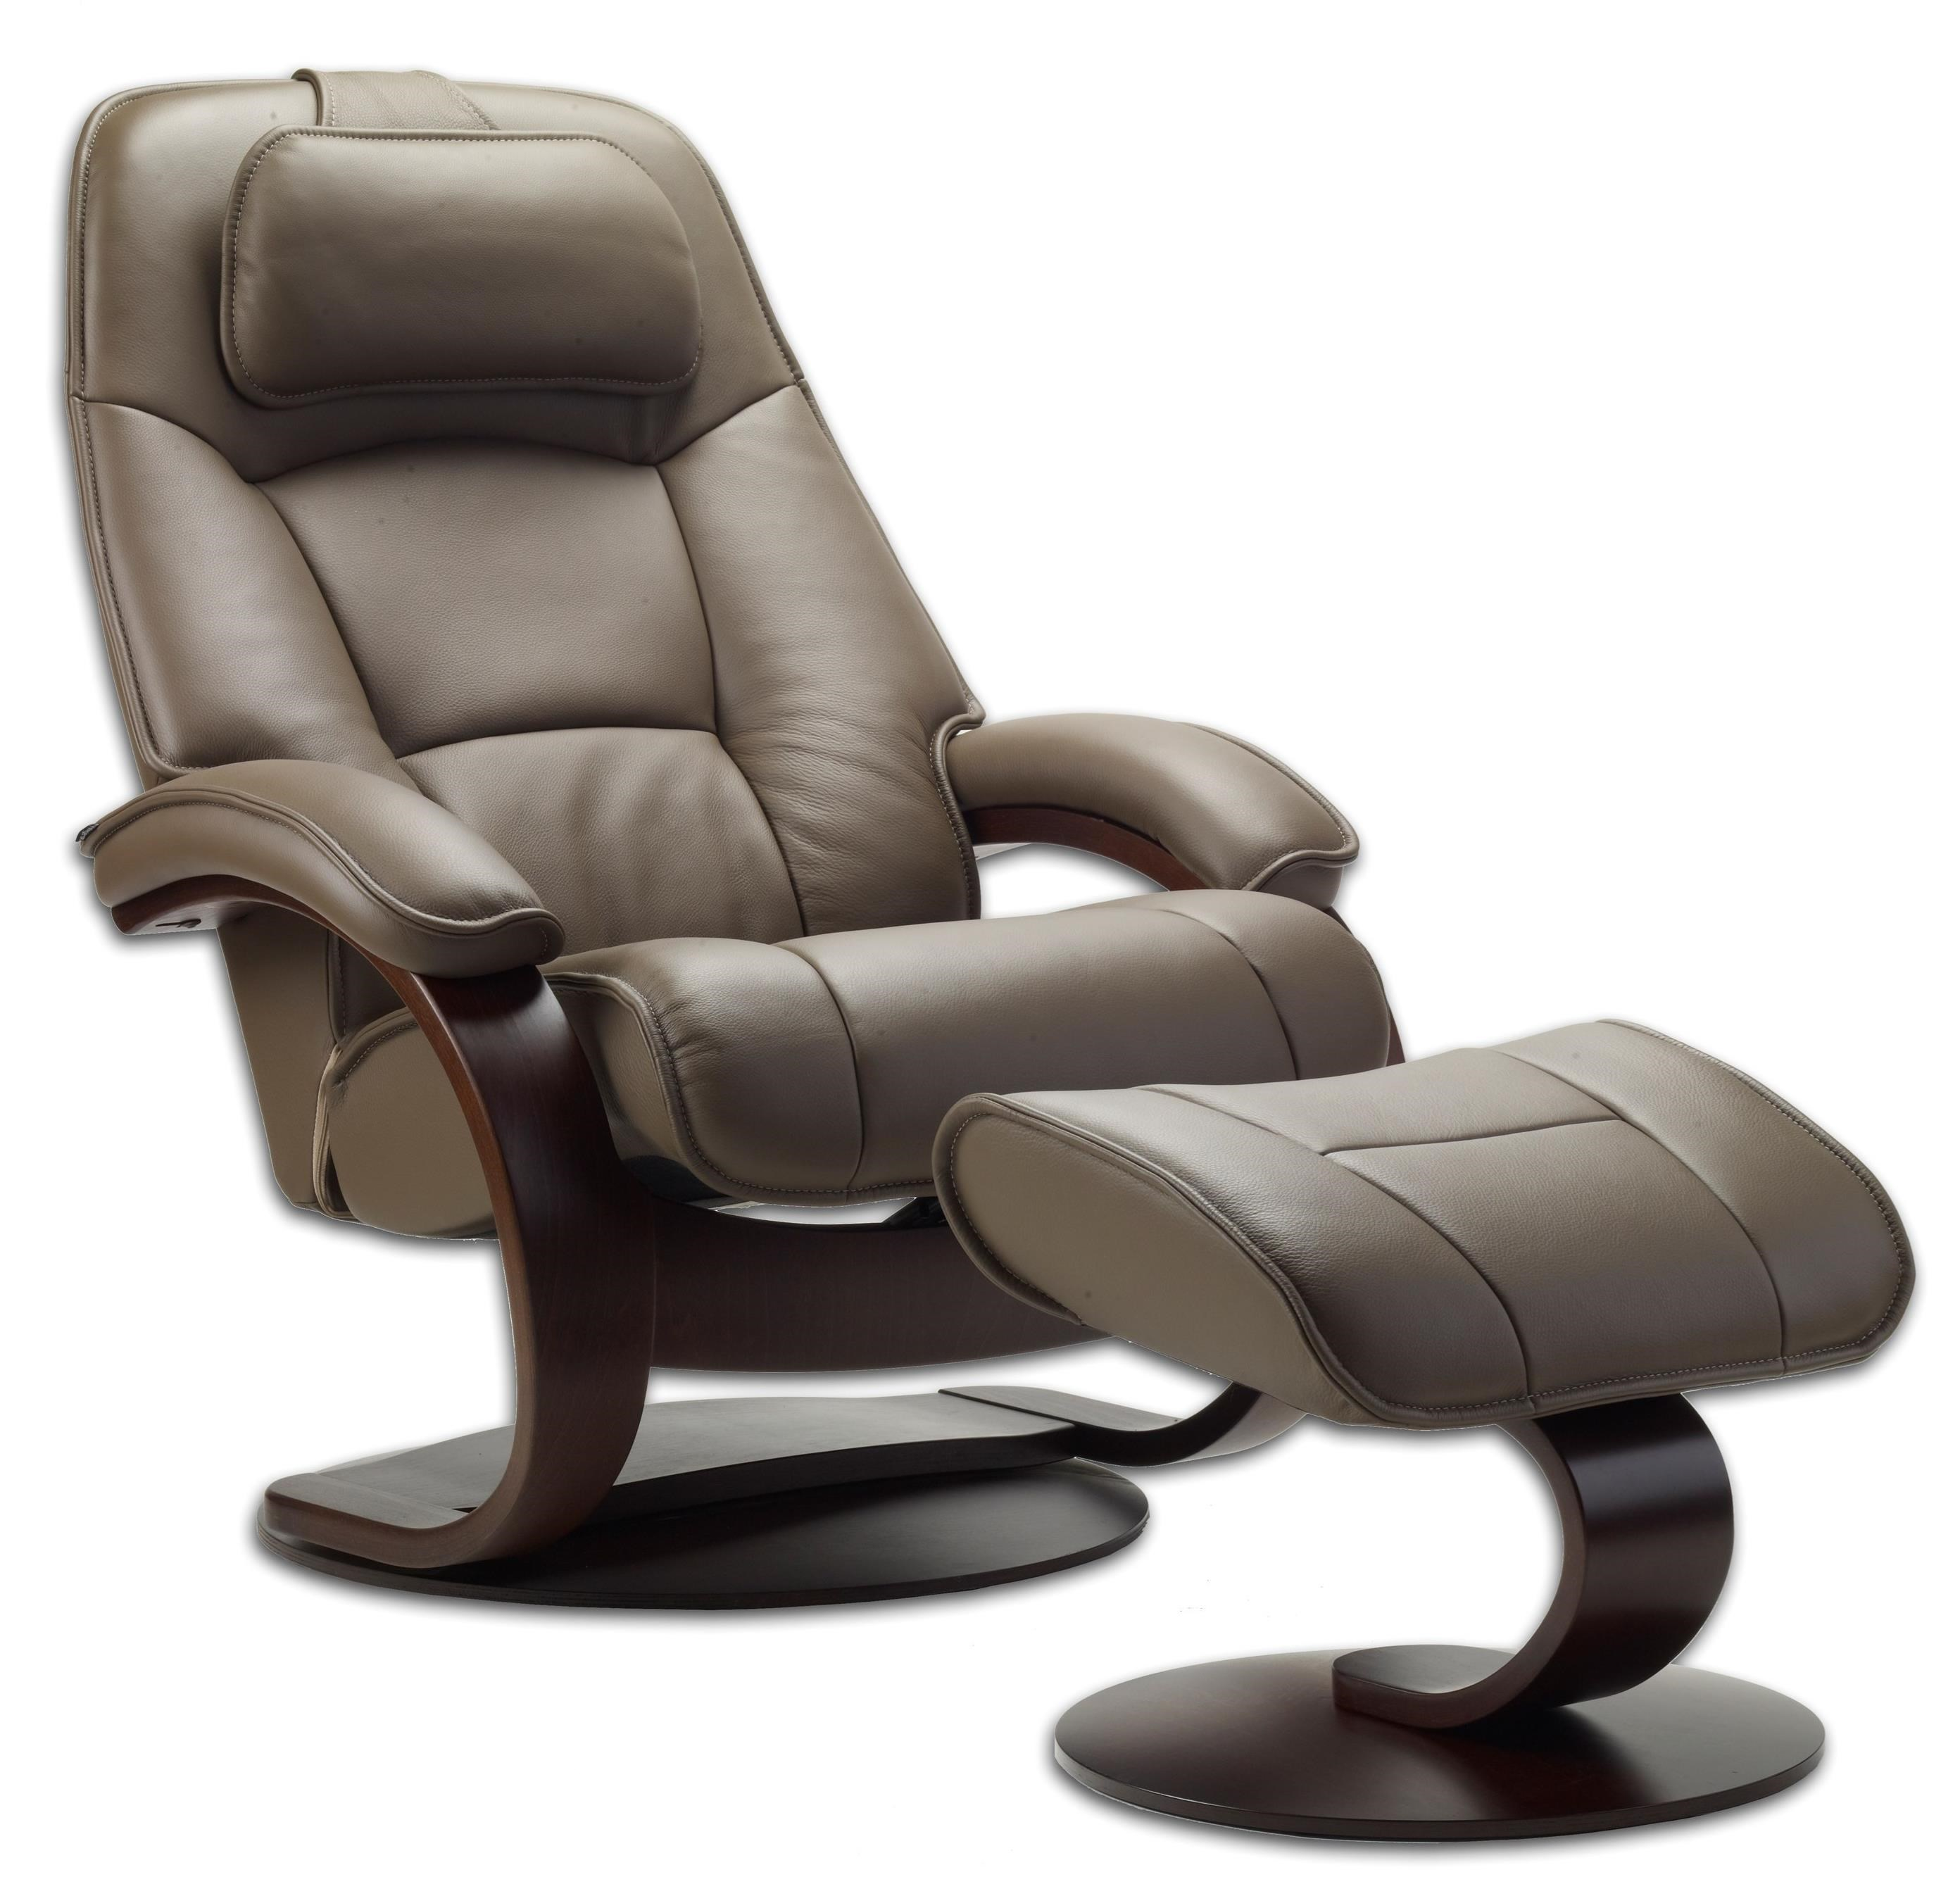 Admiral Large Reclining Chair and Ottoman by Fjords by Hjellegjerde at Saugerties Furniture Mart